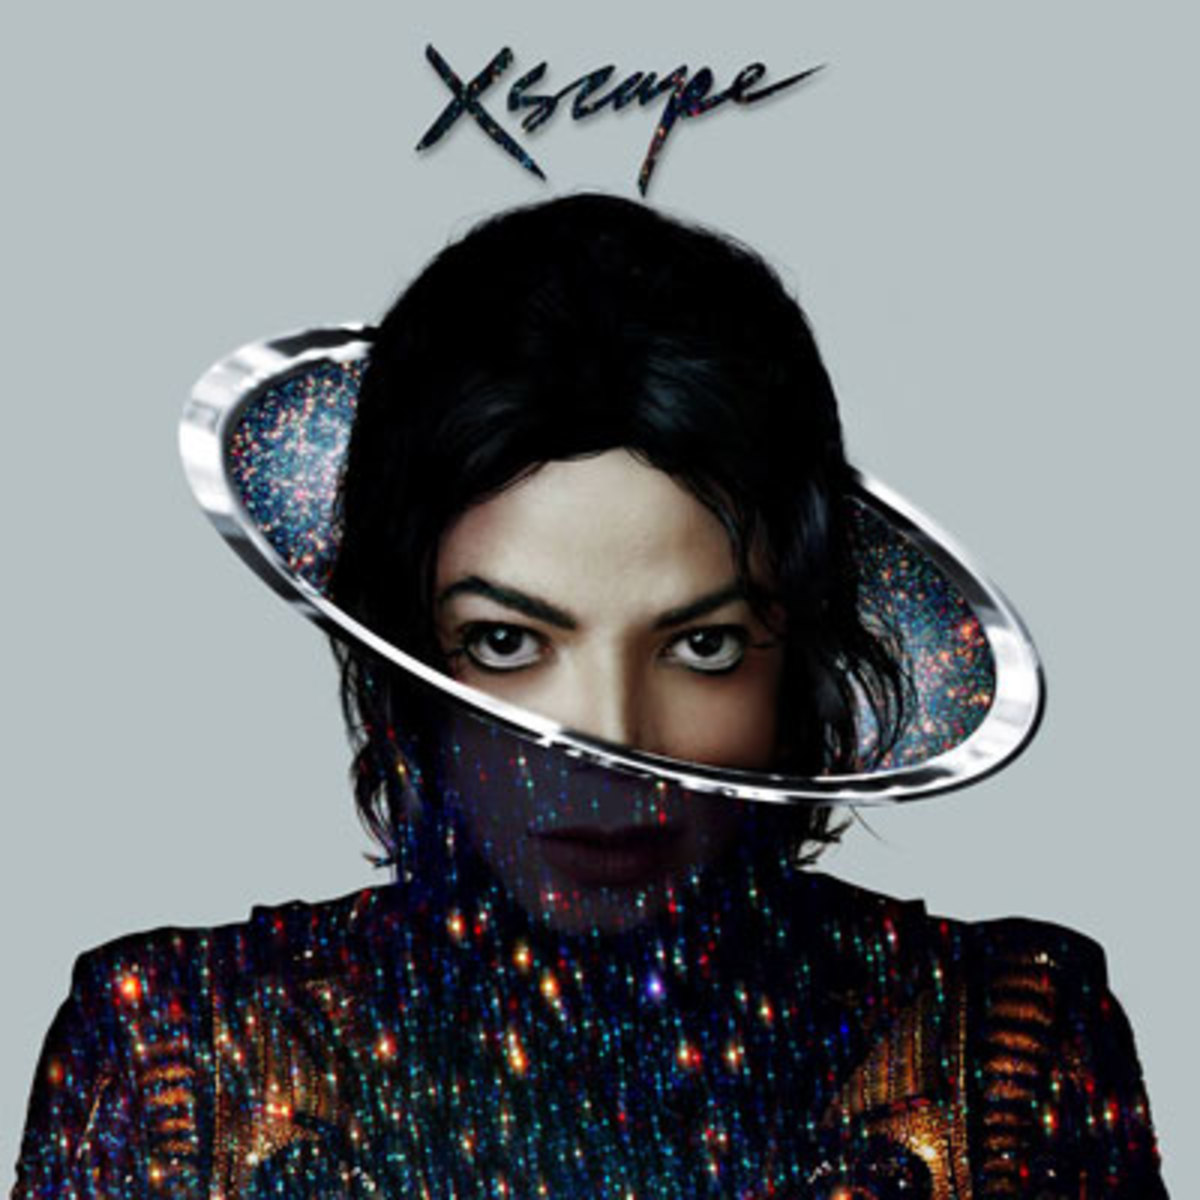 michaeljack-xscape.jpg